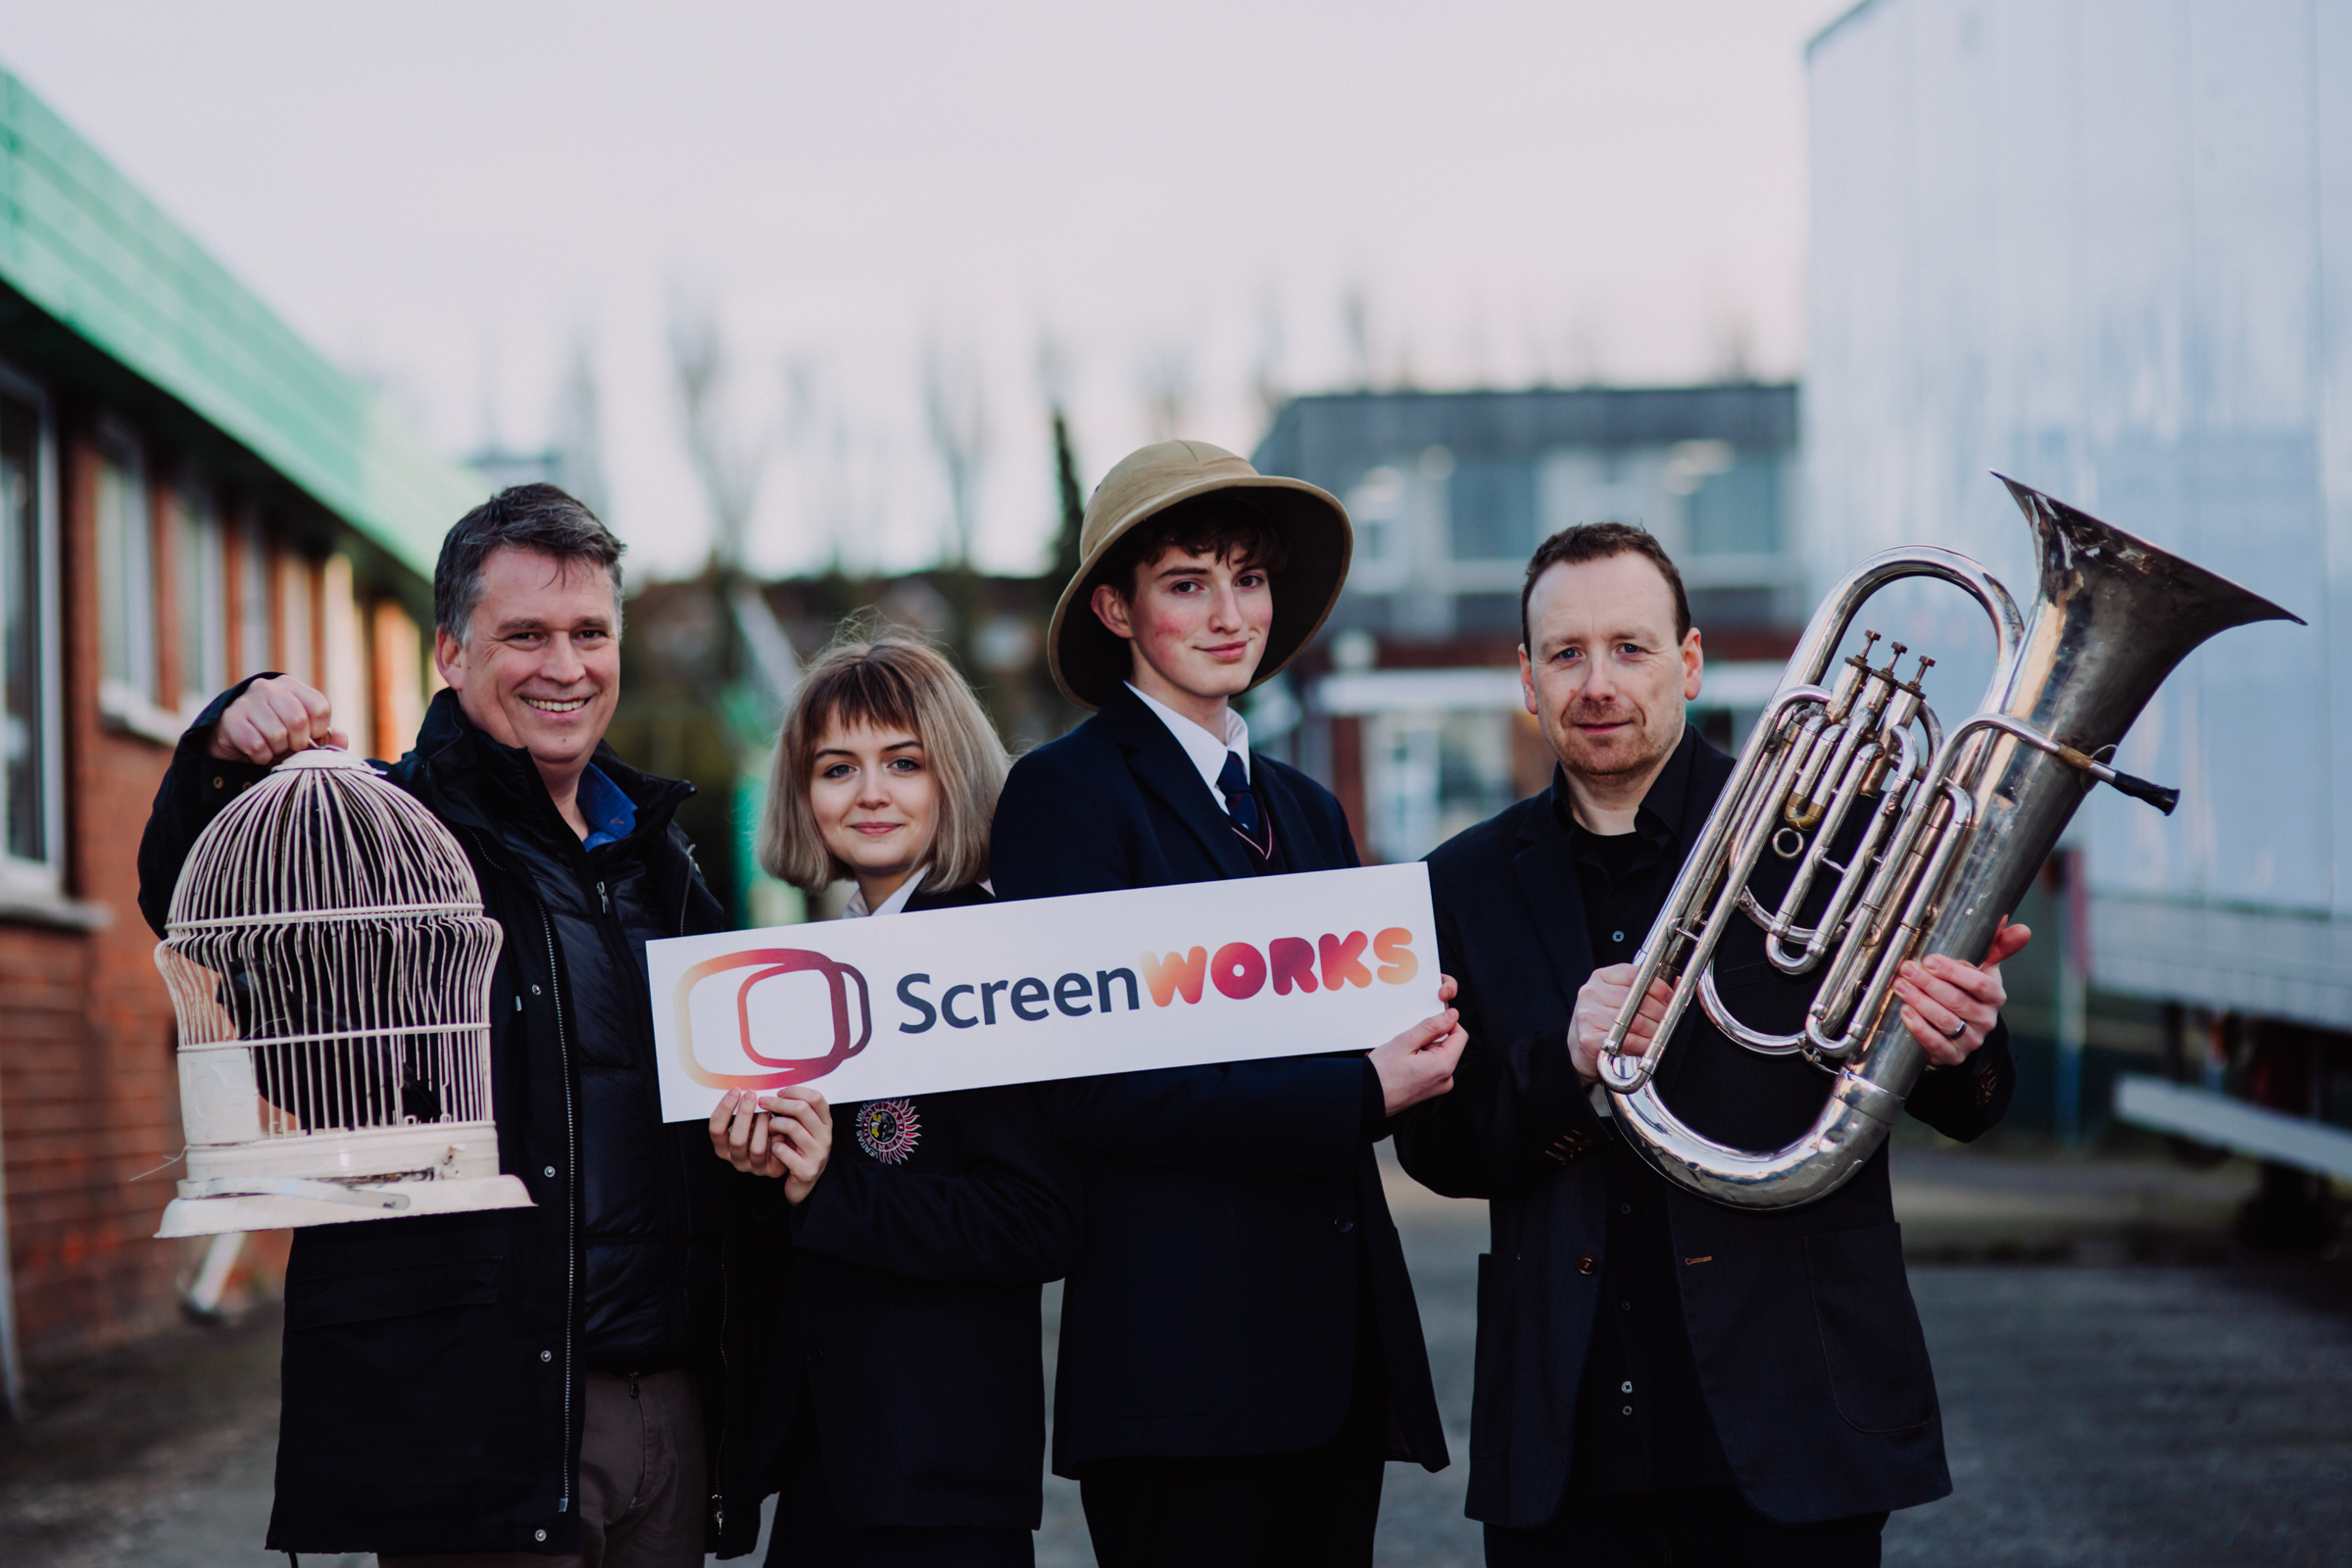 ScreenWorks launched to help young people get into the screen industries